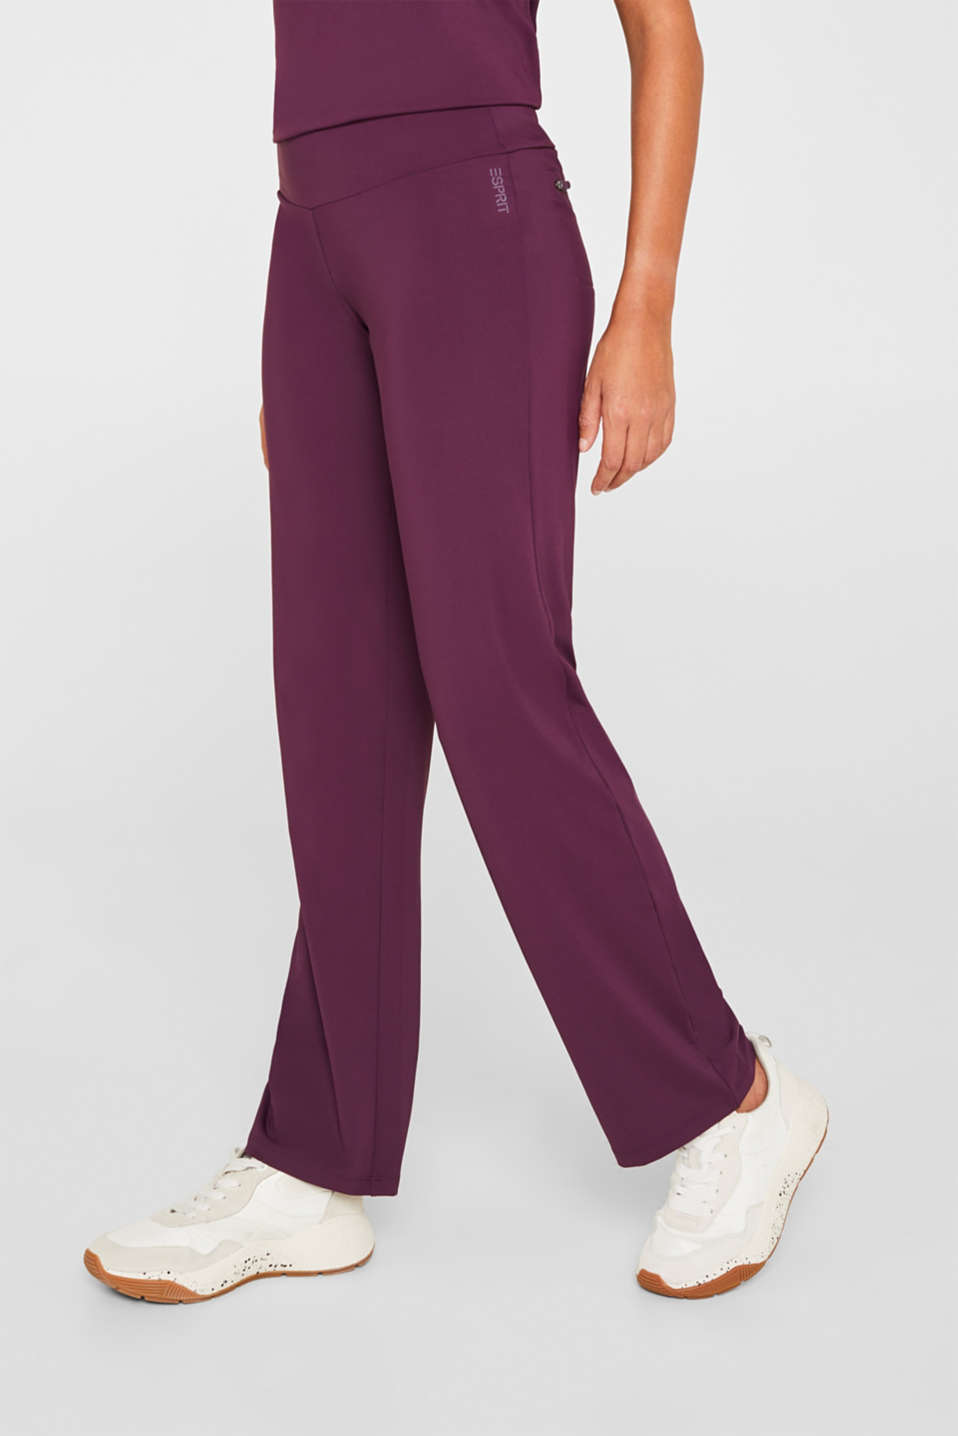 Esprit - Active trousers with a straight leg